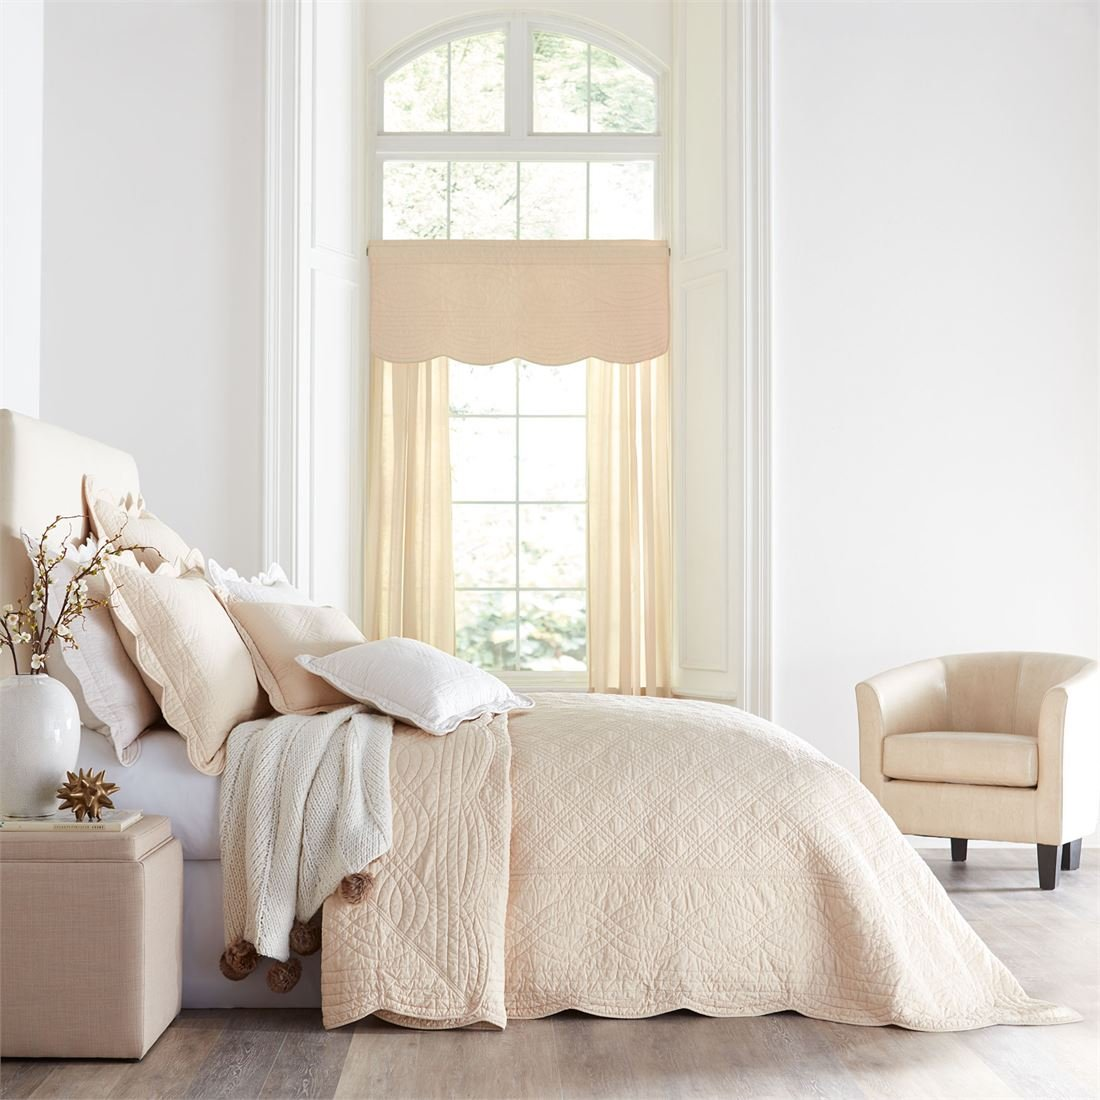 BrylaneHome Florence Bedspread (Oatmeal,Queen)